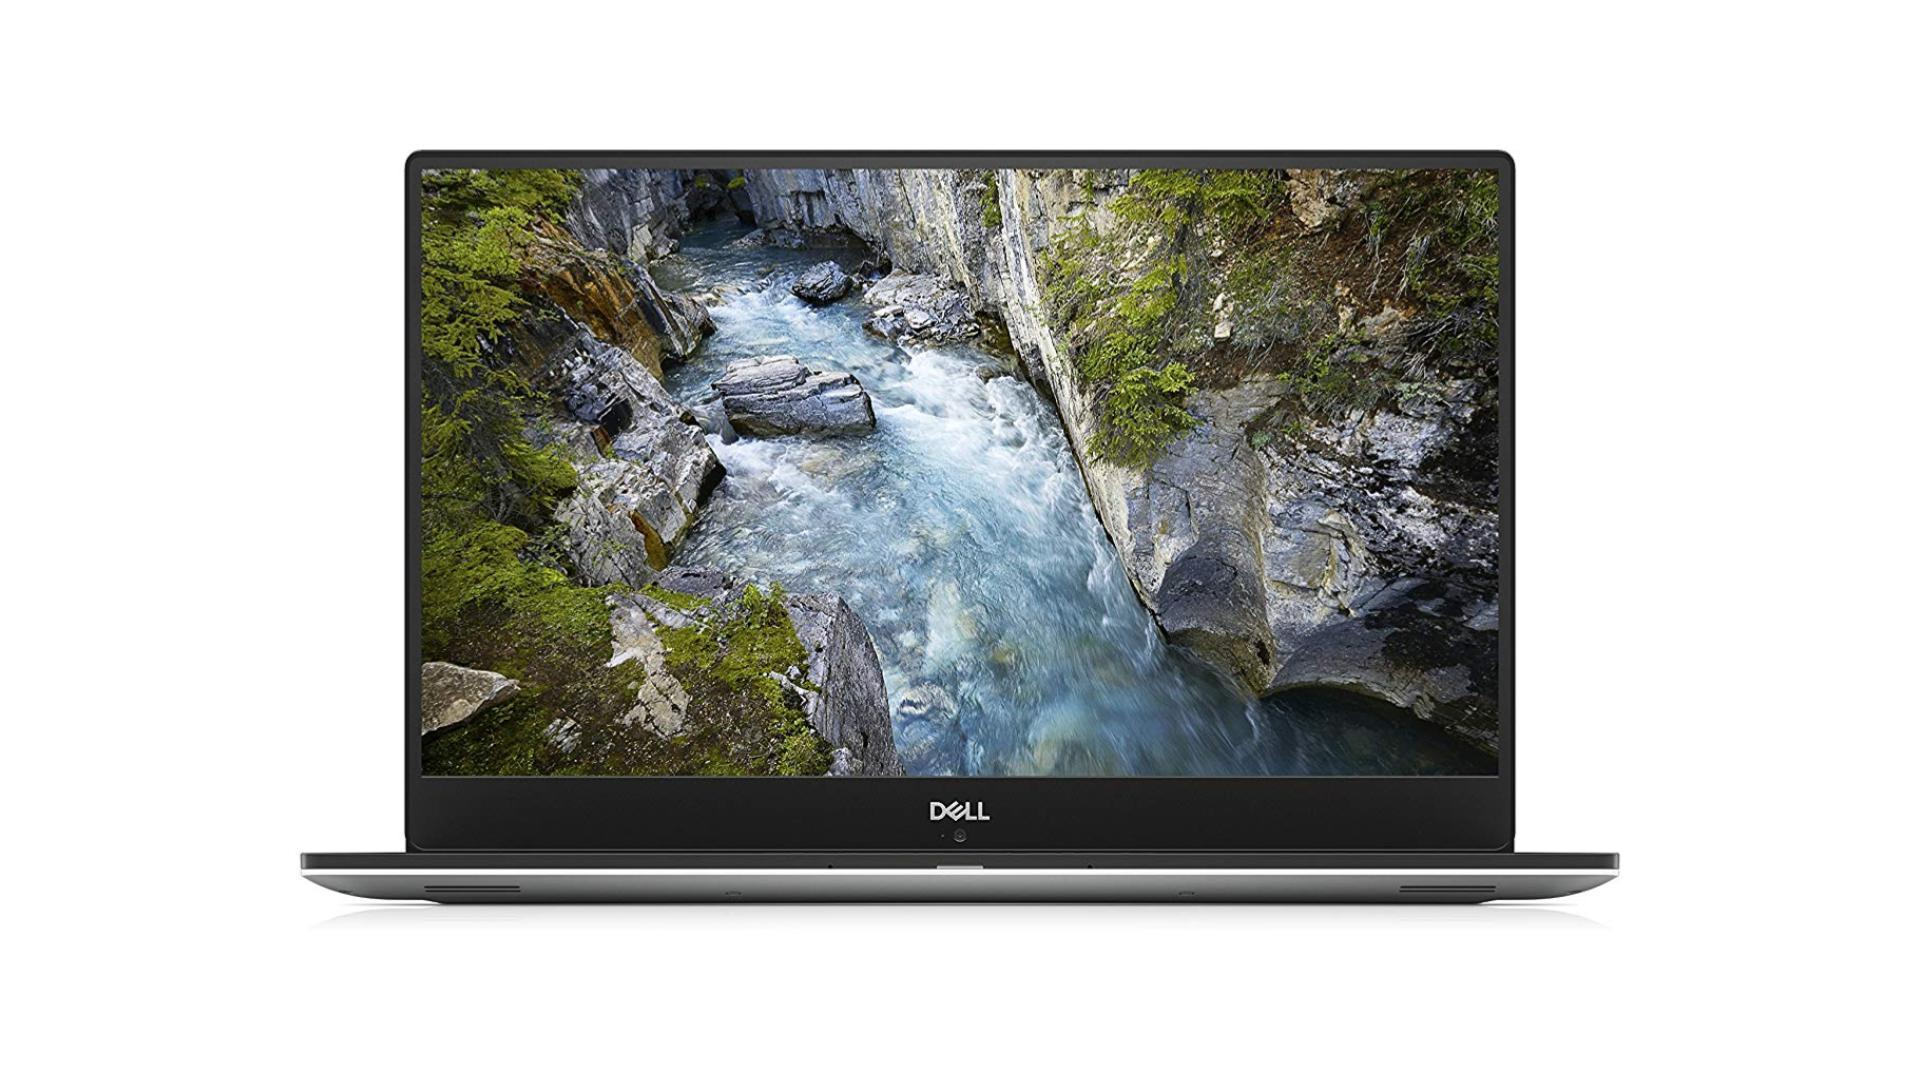 🔥 Black Friday : le Dell XPS 15 (2018) à 1159 euros au lieu de 1499 euros chez Amazon